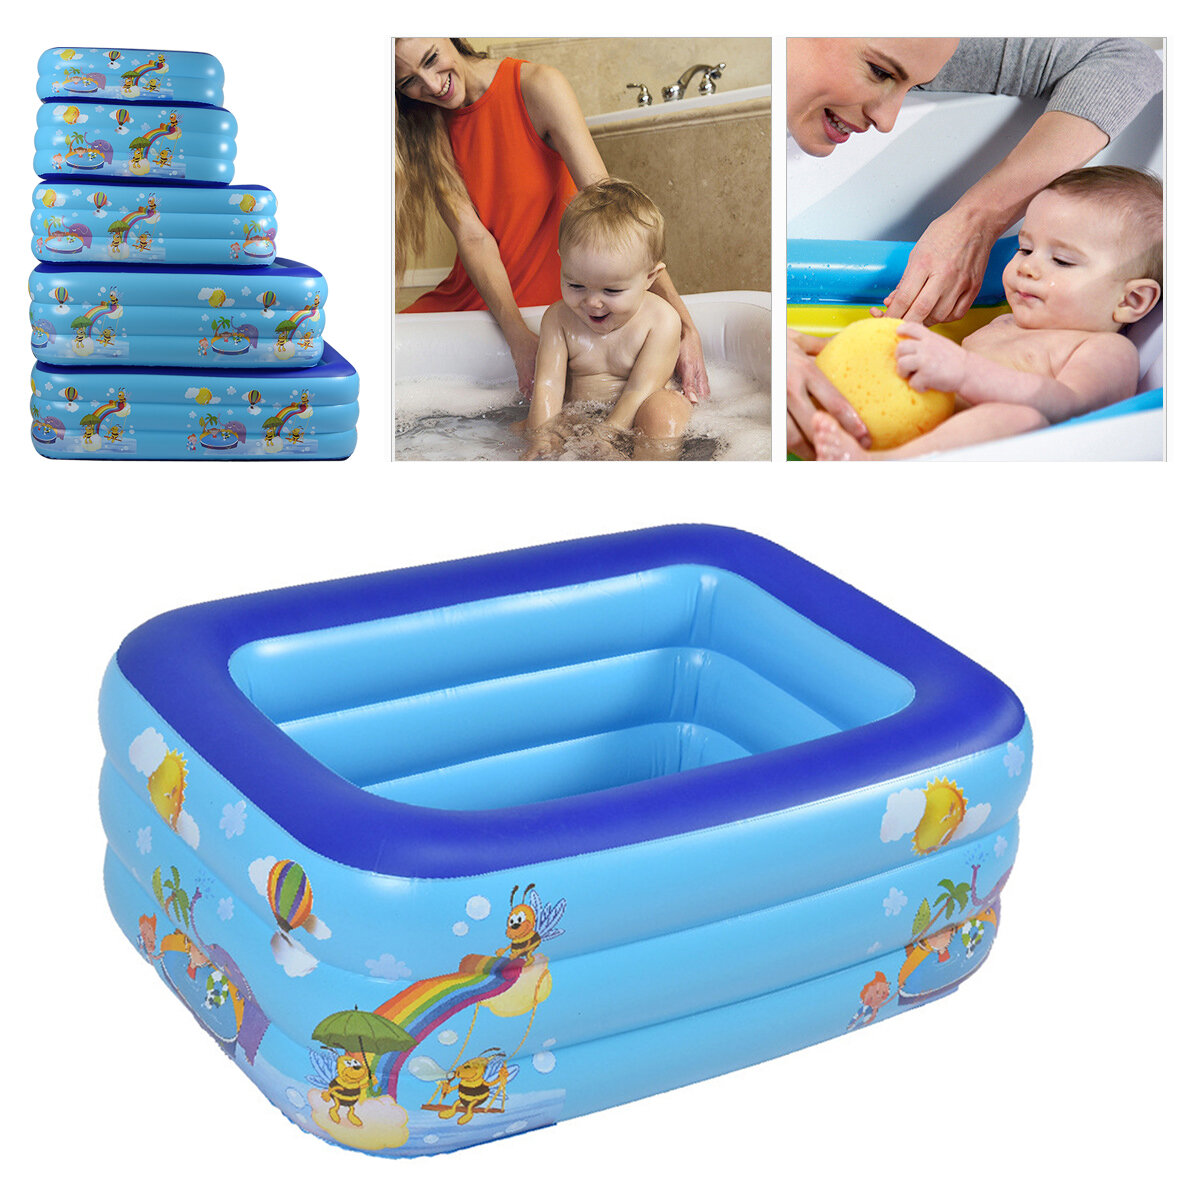 120/130/150/180/210cm Kids Inflatable Swimming Pool Indoor Home For Children Swim from Banggood